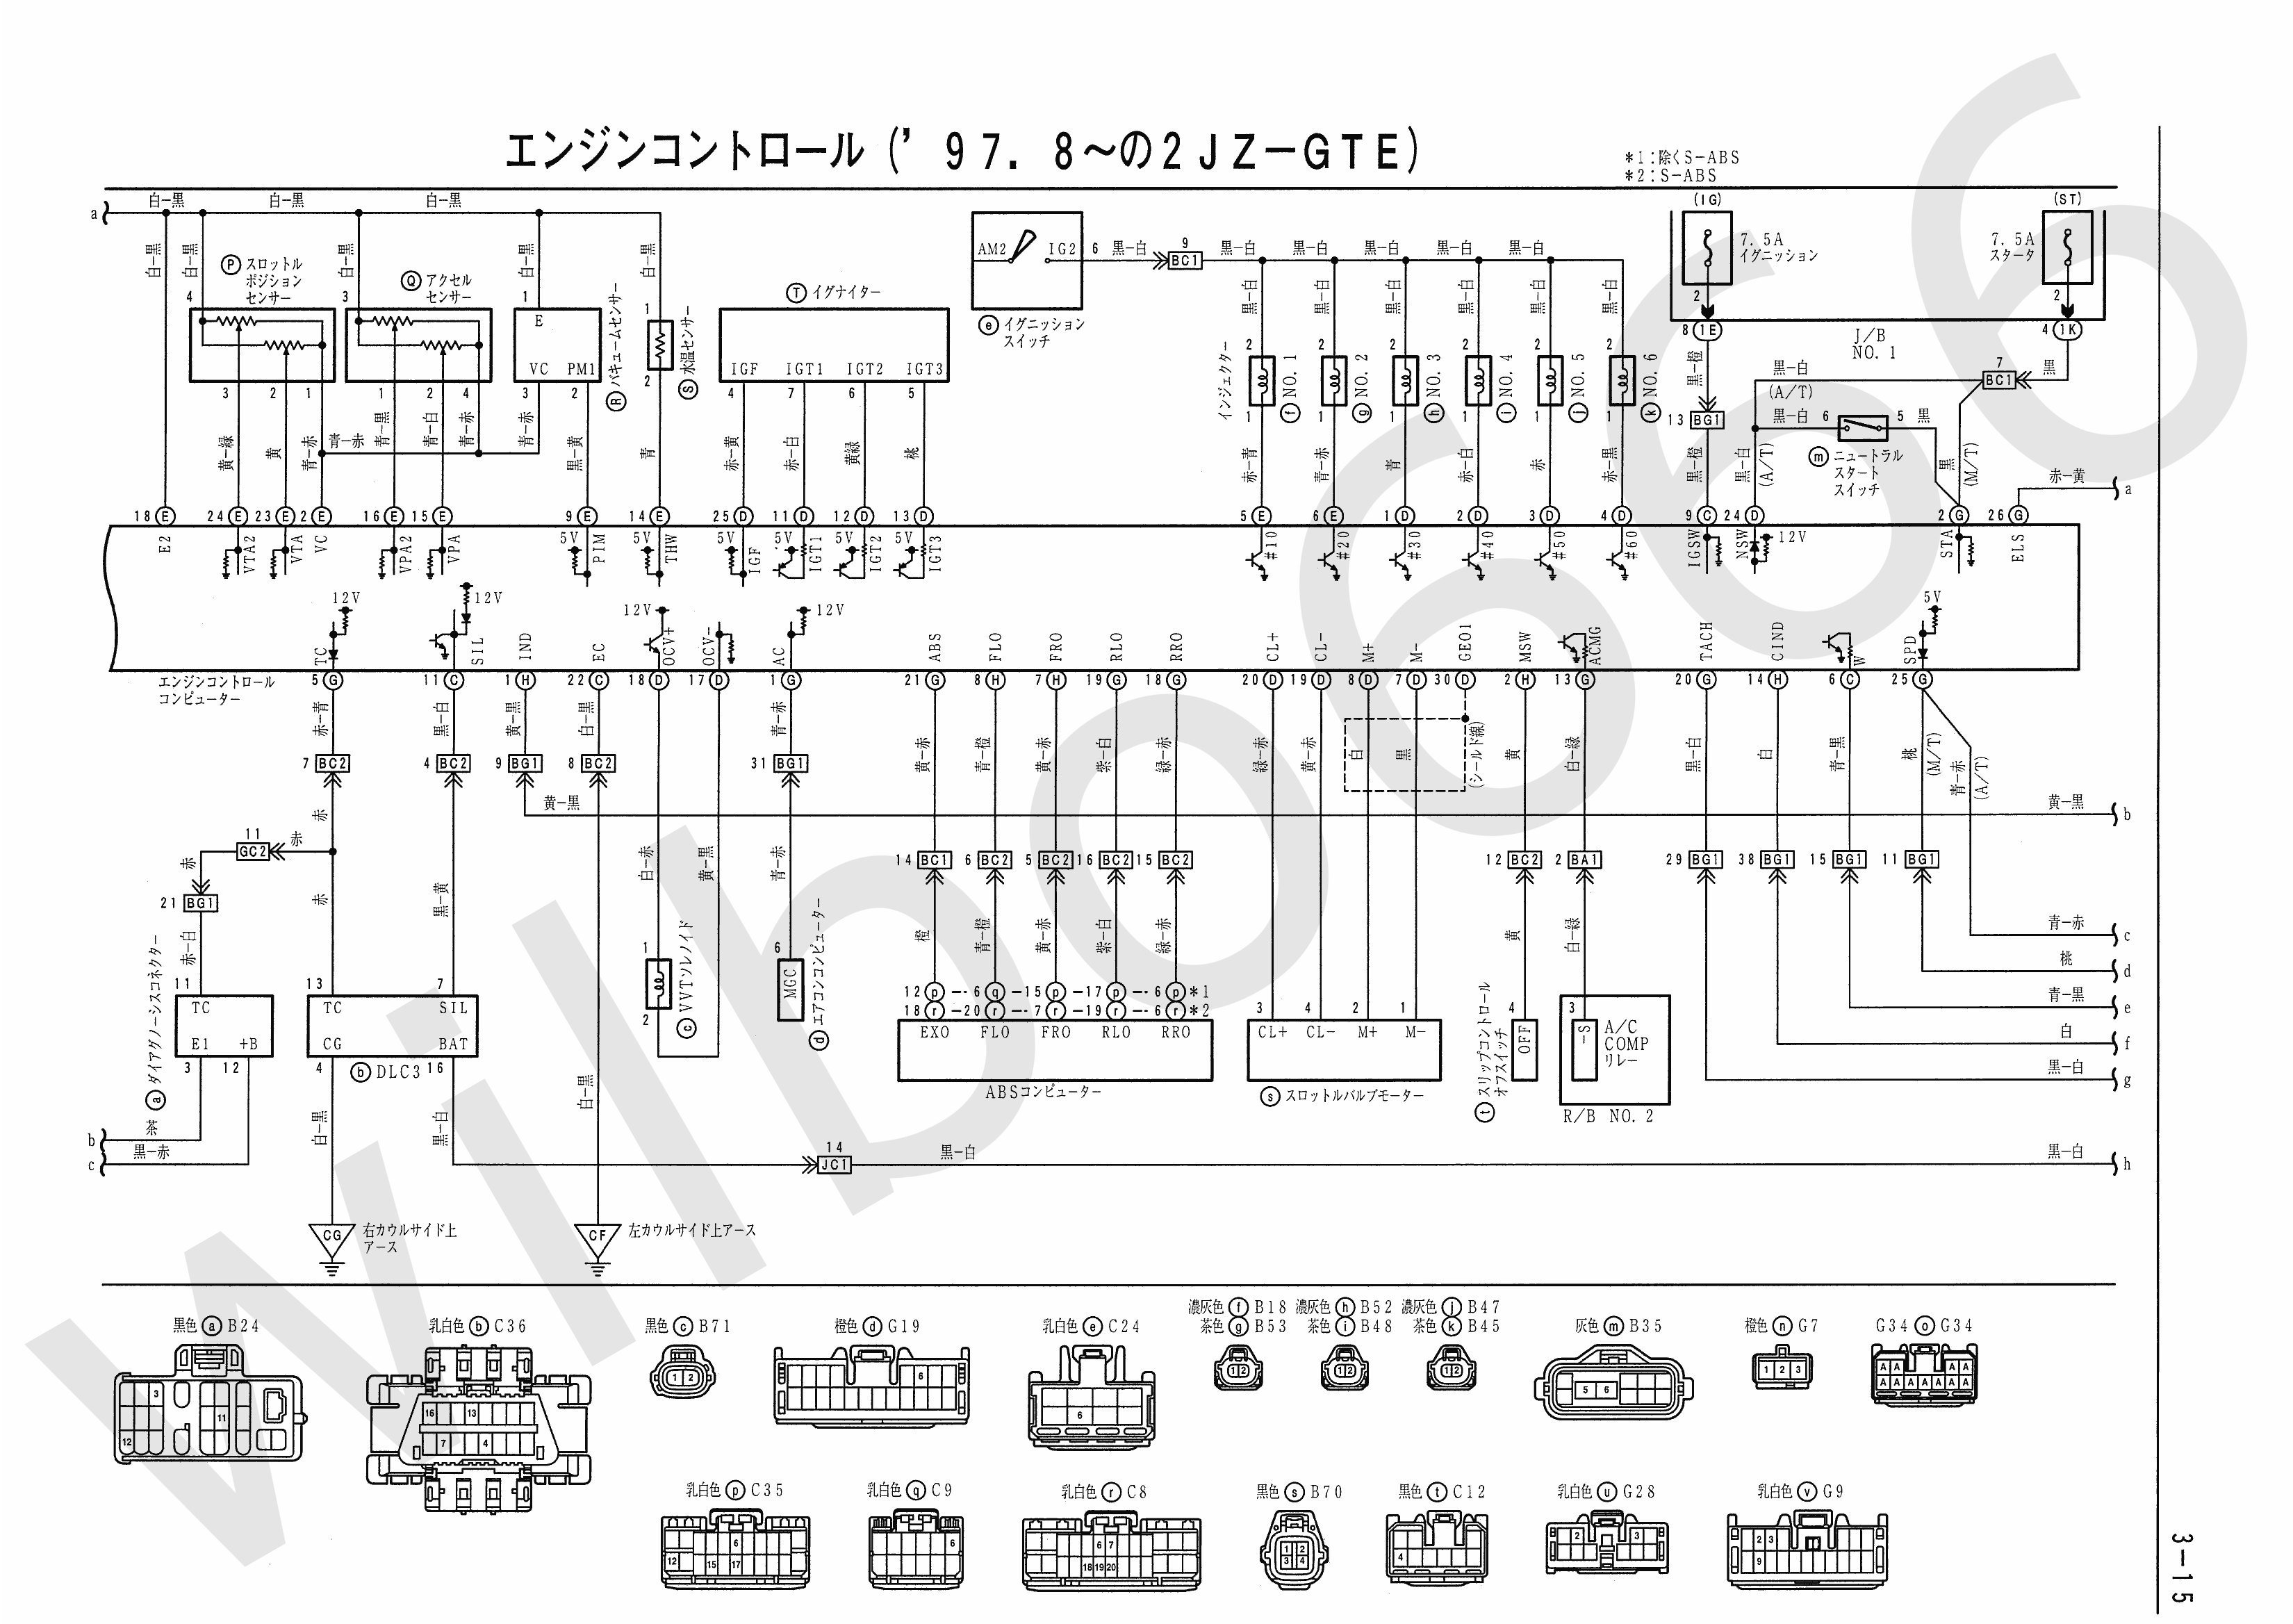 2jz wiring diagram fisher minute mount plow headlight wilbo666 gte vvti jza80 supra engine